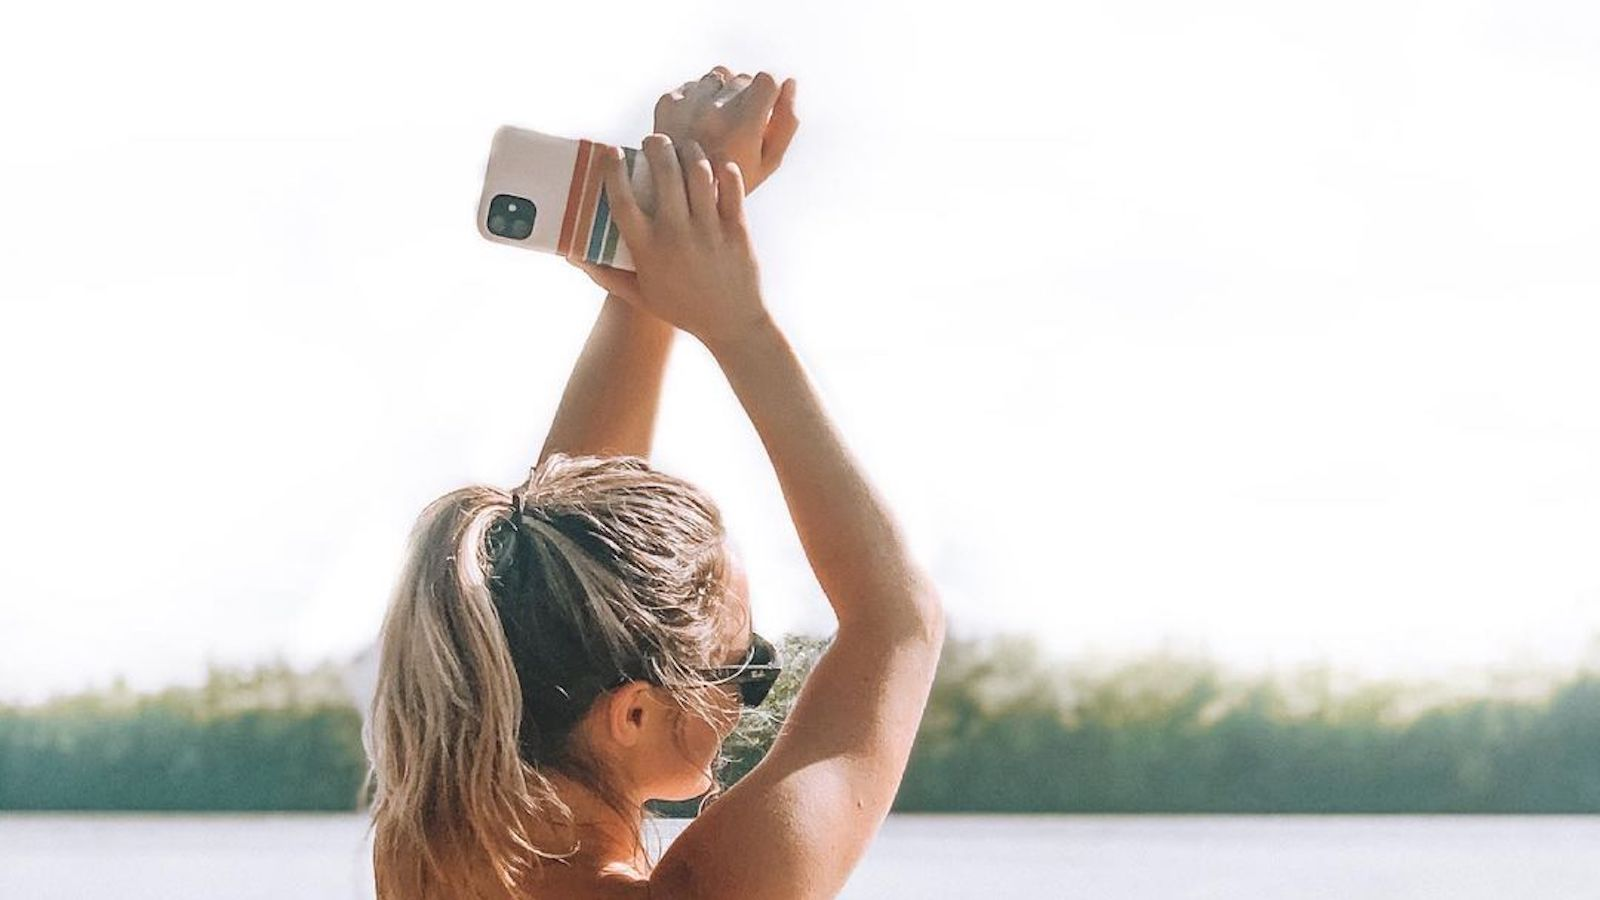 Brand ambassador @savannahwickey stand faces a lake and holds up her arms, slightly crossed. in her right hand she holds up her mobile phone with a striped Casely cover.